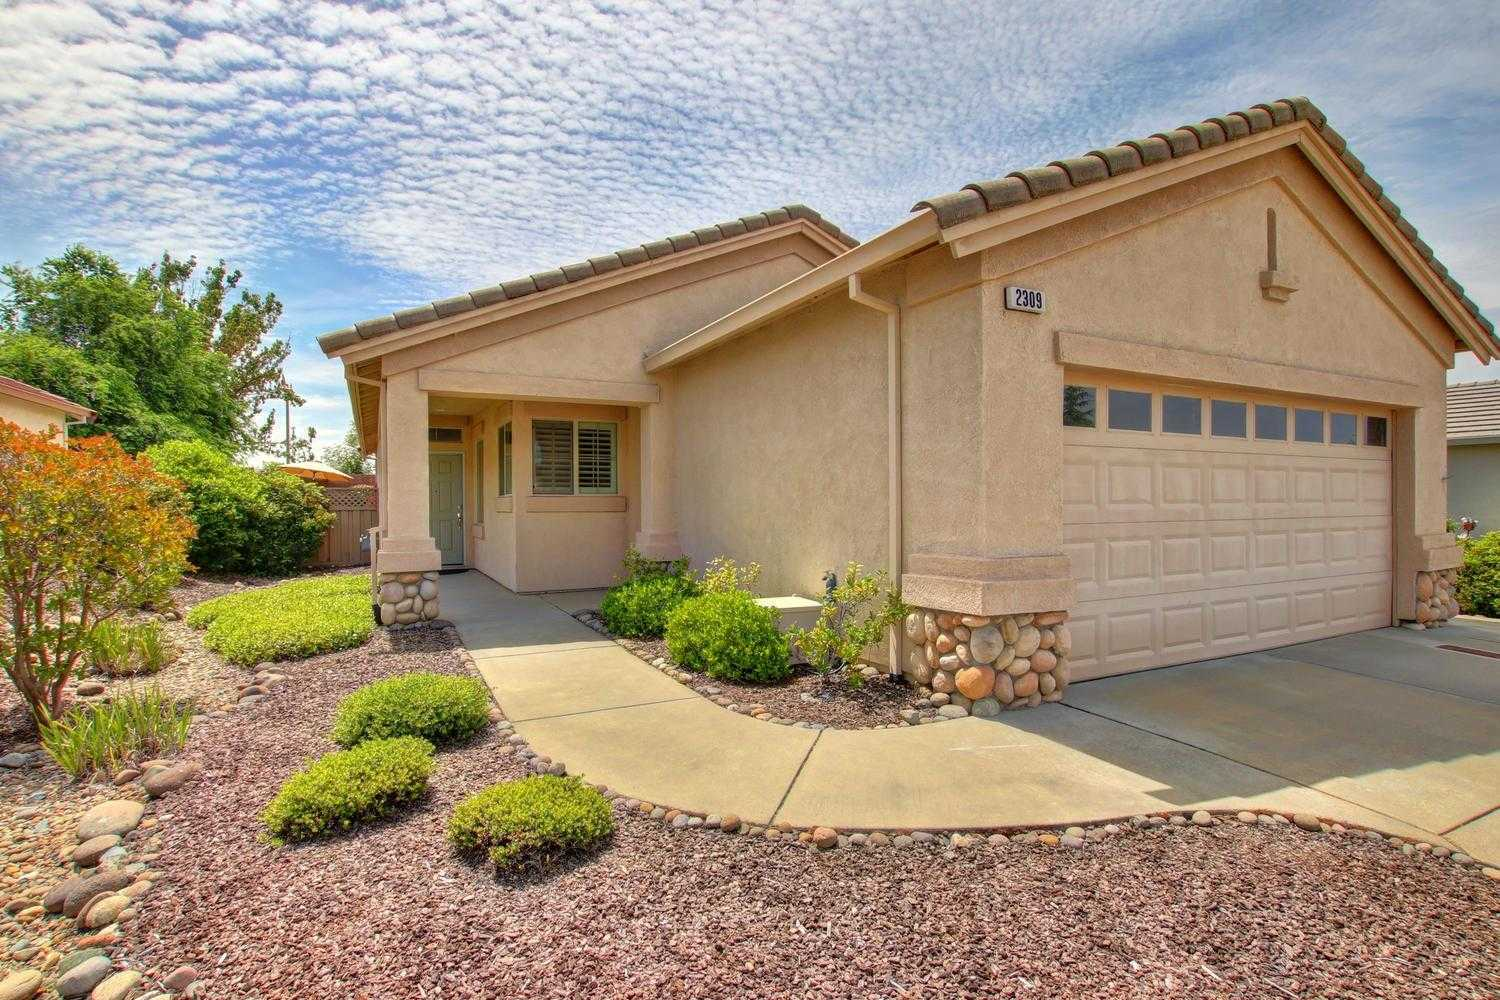 2309 Winding Way Lincoln, CA 95648